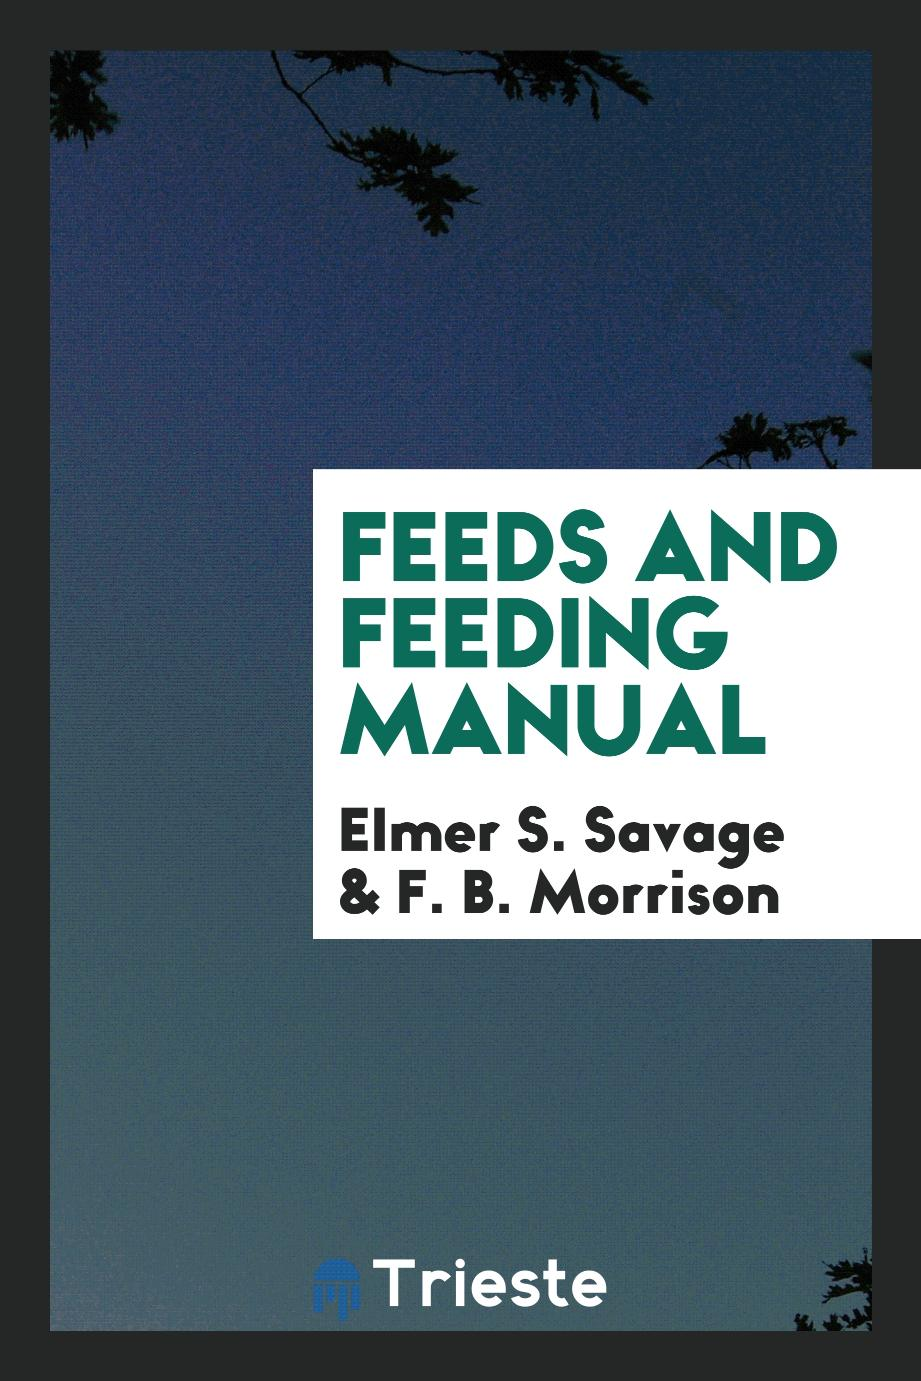 Feeds and feeding manual